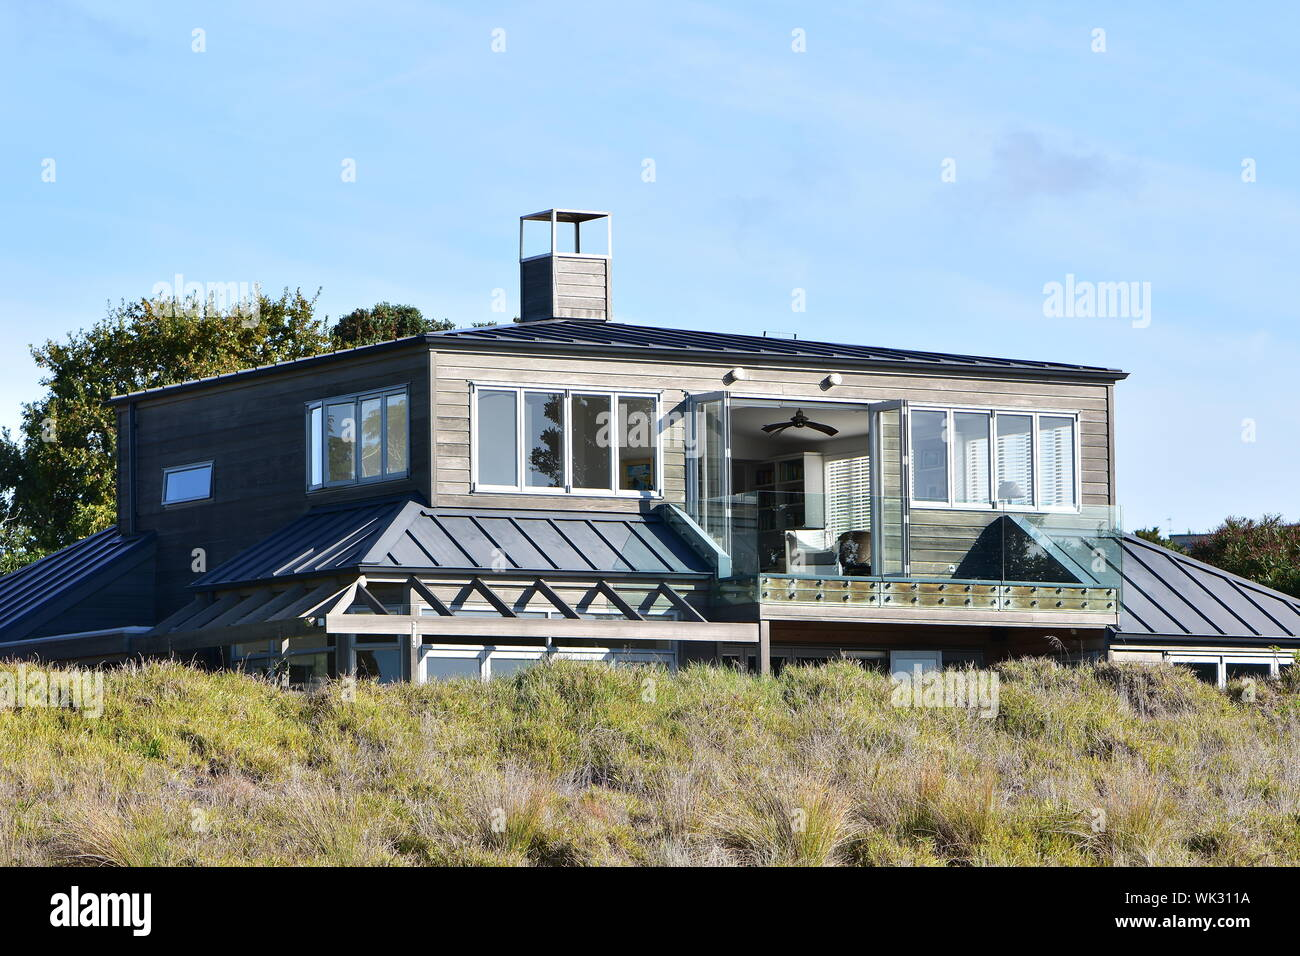 Modern wooden house protected from wind by dune yet allowing good views from upper story. Stock Photo